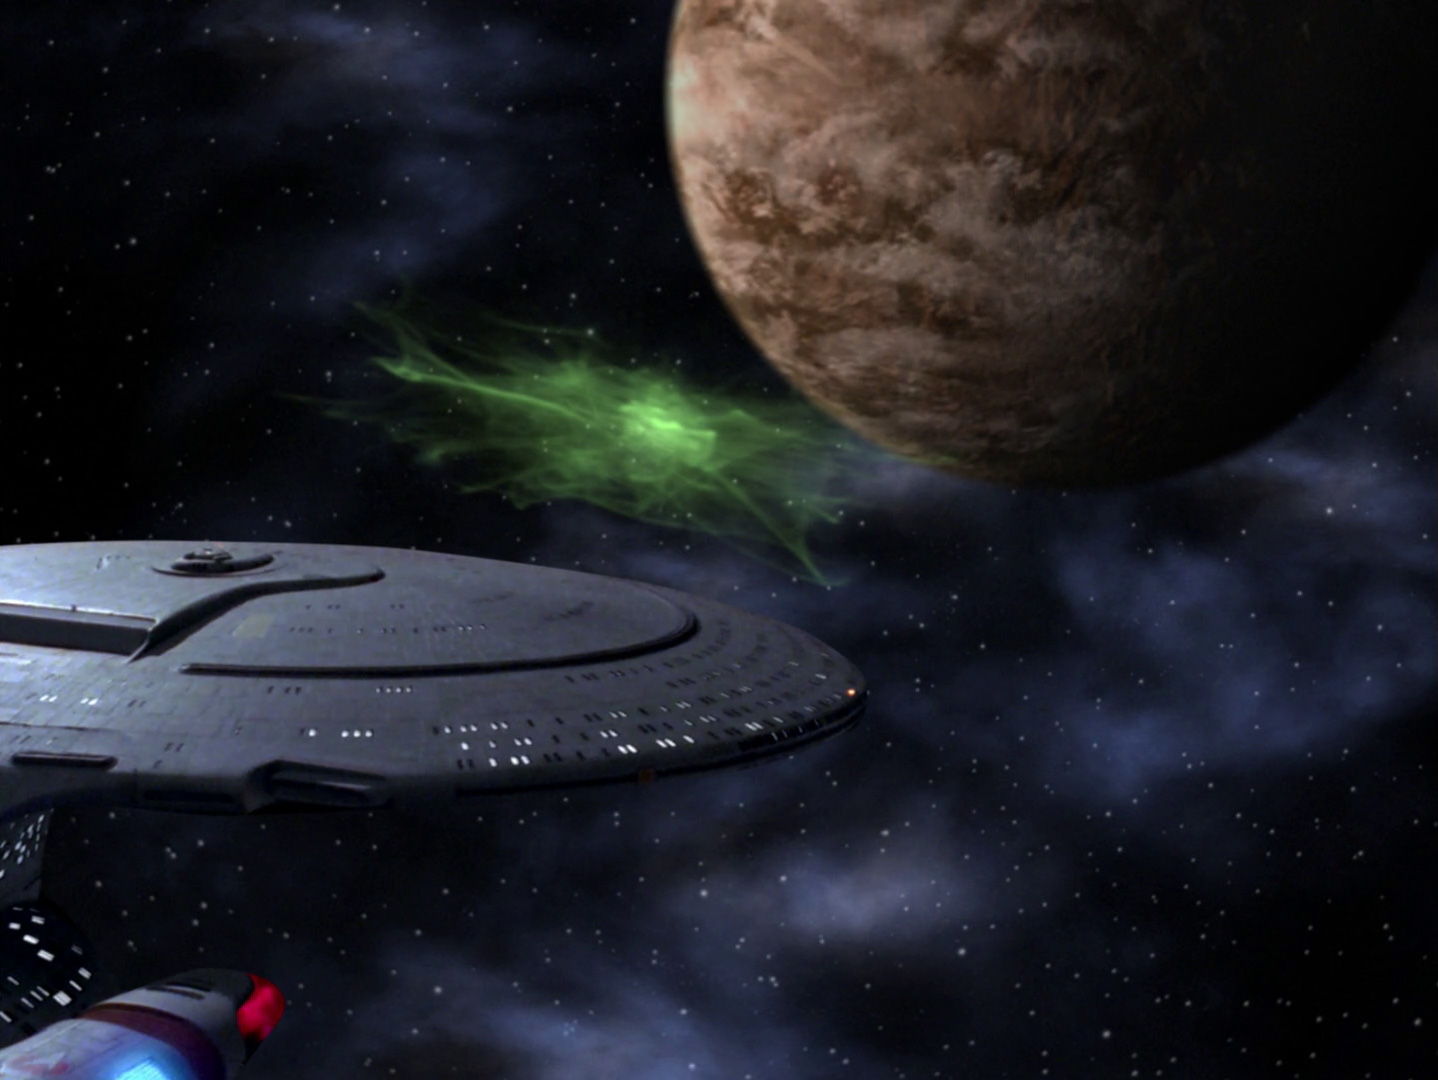 Star Trek: The Next Generation - Beweise (Clues) Blu-ray Screencap © CBS/Paramount